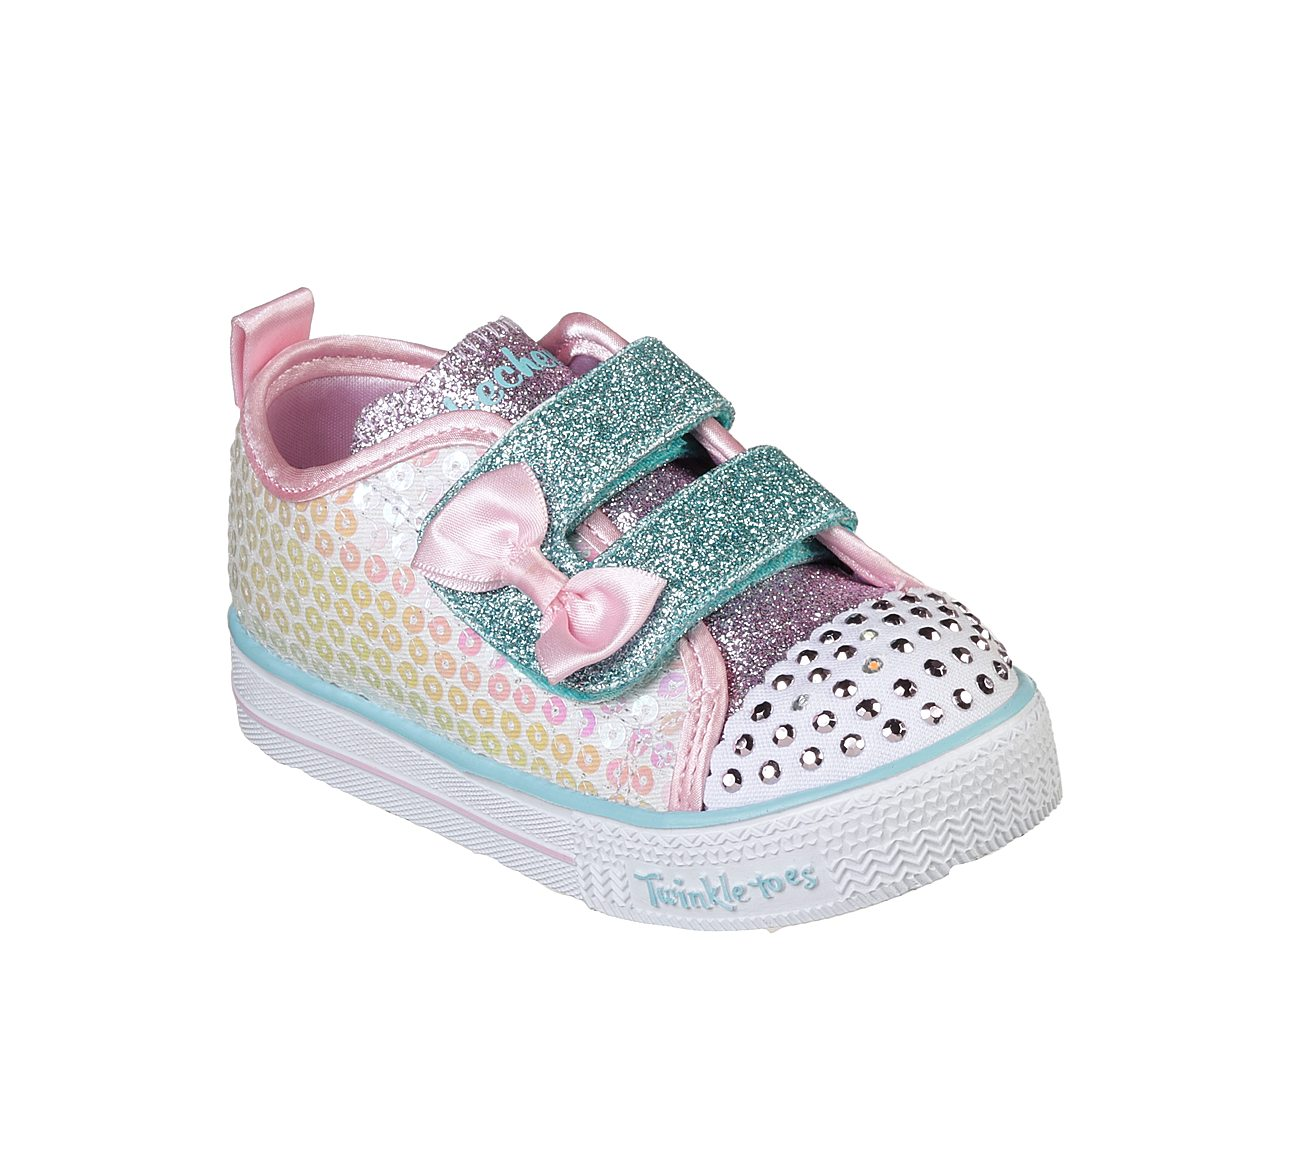 9f753cfa487bd Buy SKECHERS Twinkle Toes: Shuffle Lite - Mini Mermaid SKECHERS S-Lights  Shoes only £40.00